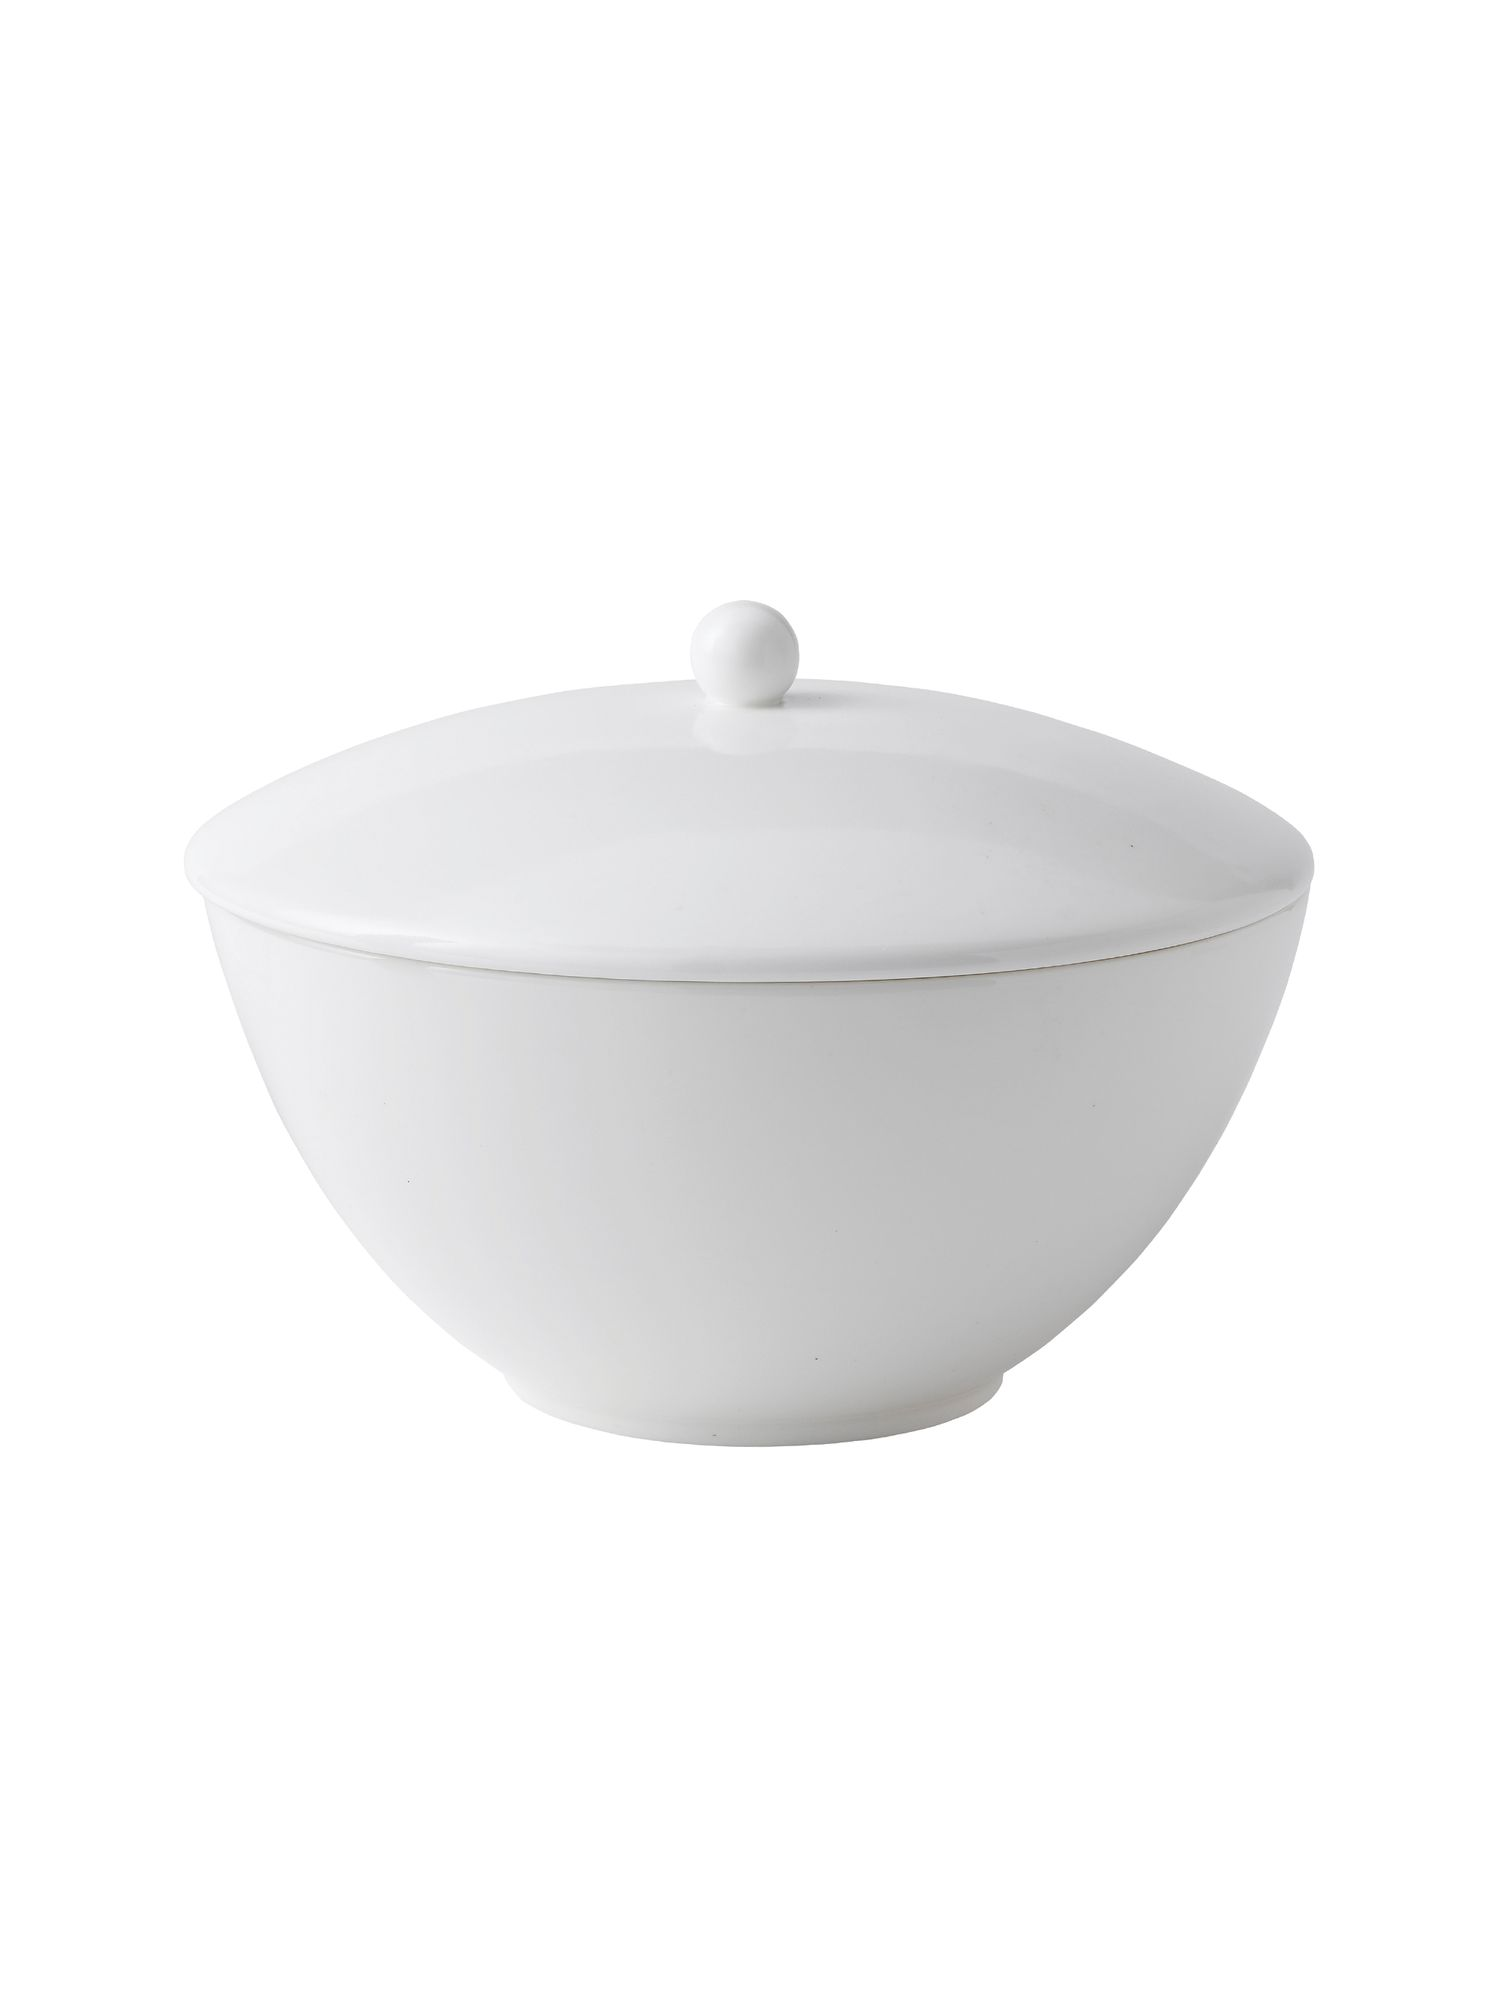 Jasper conran covered serving dish